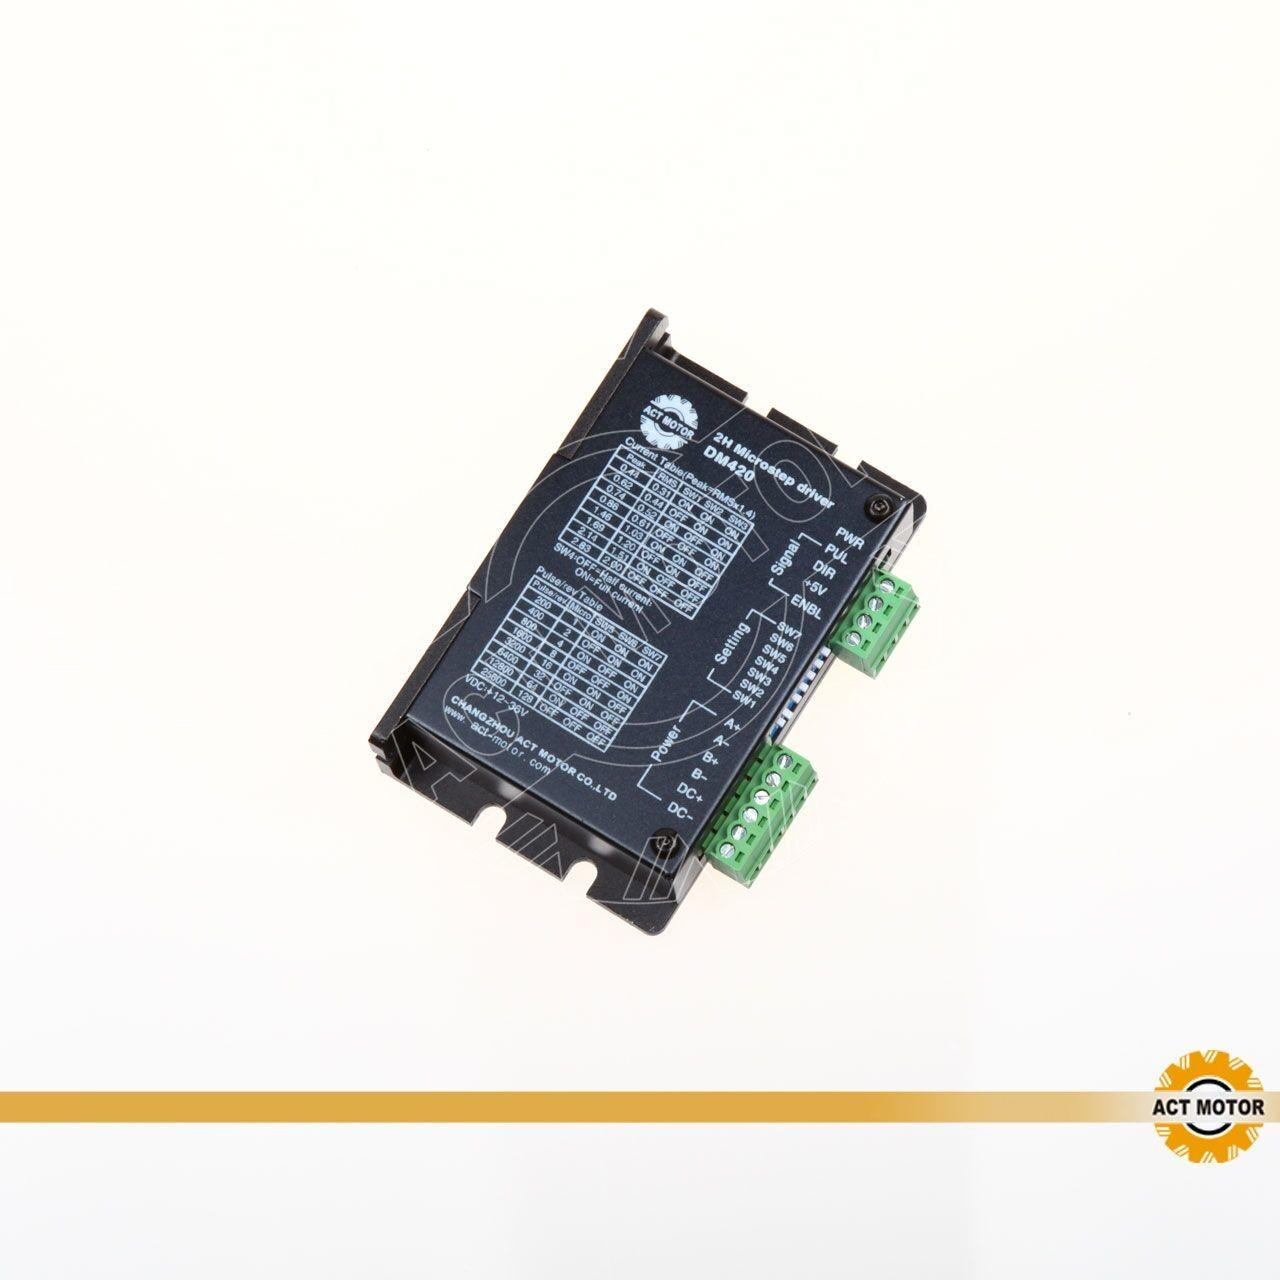 Buy cheap ACT DM420 hybrid stepper motor drivers, Factory direct sales product